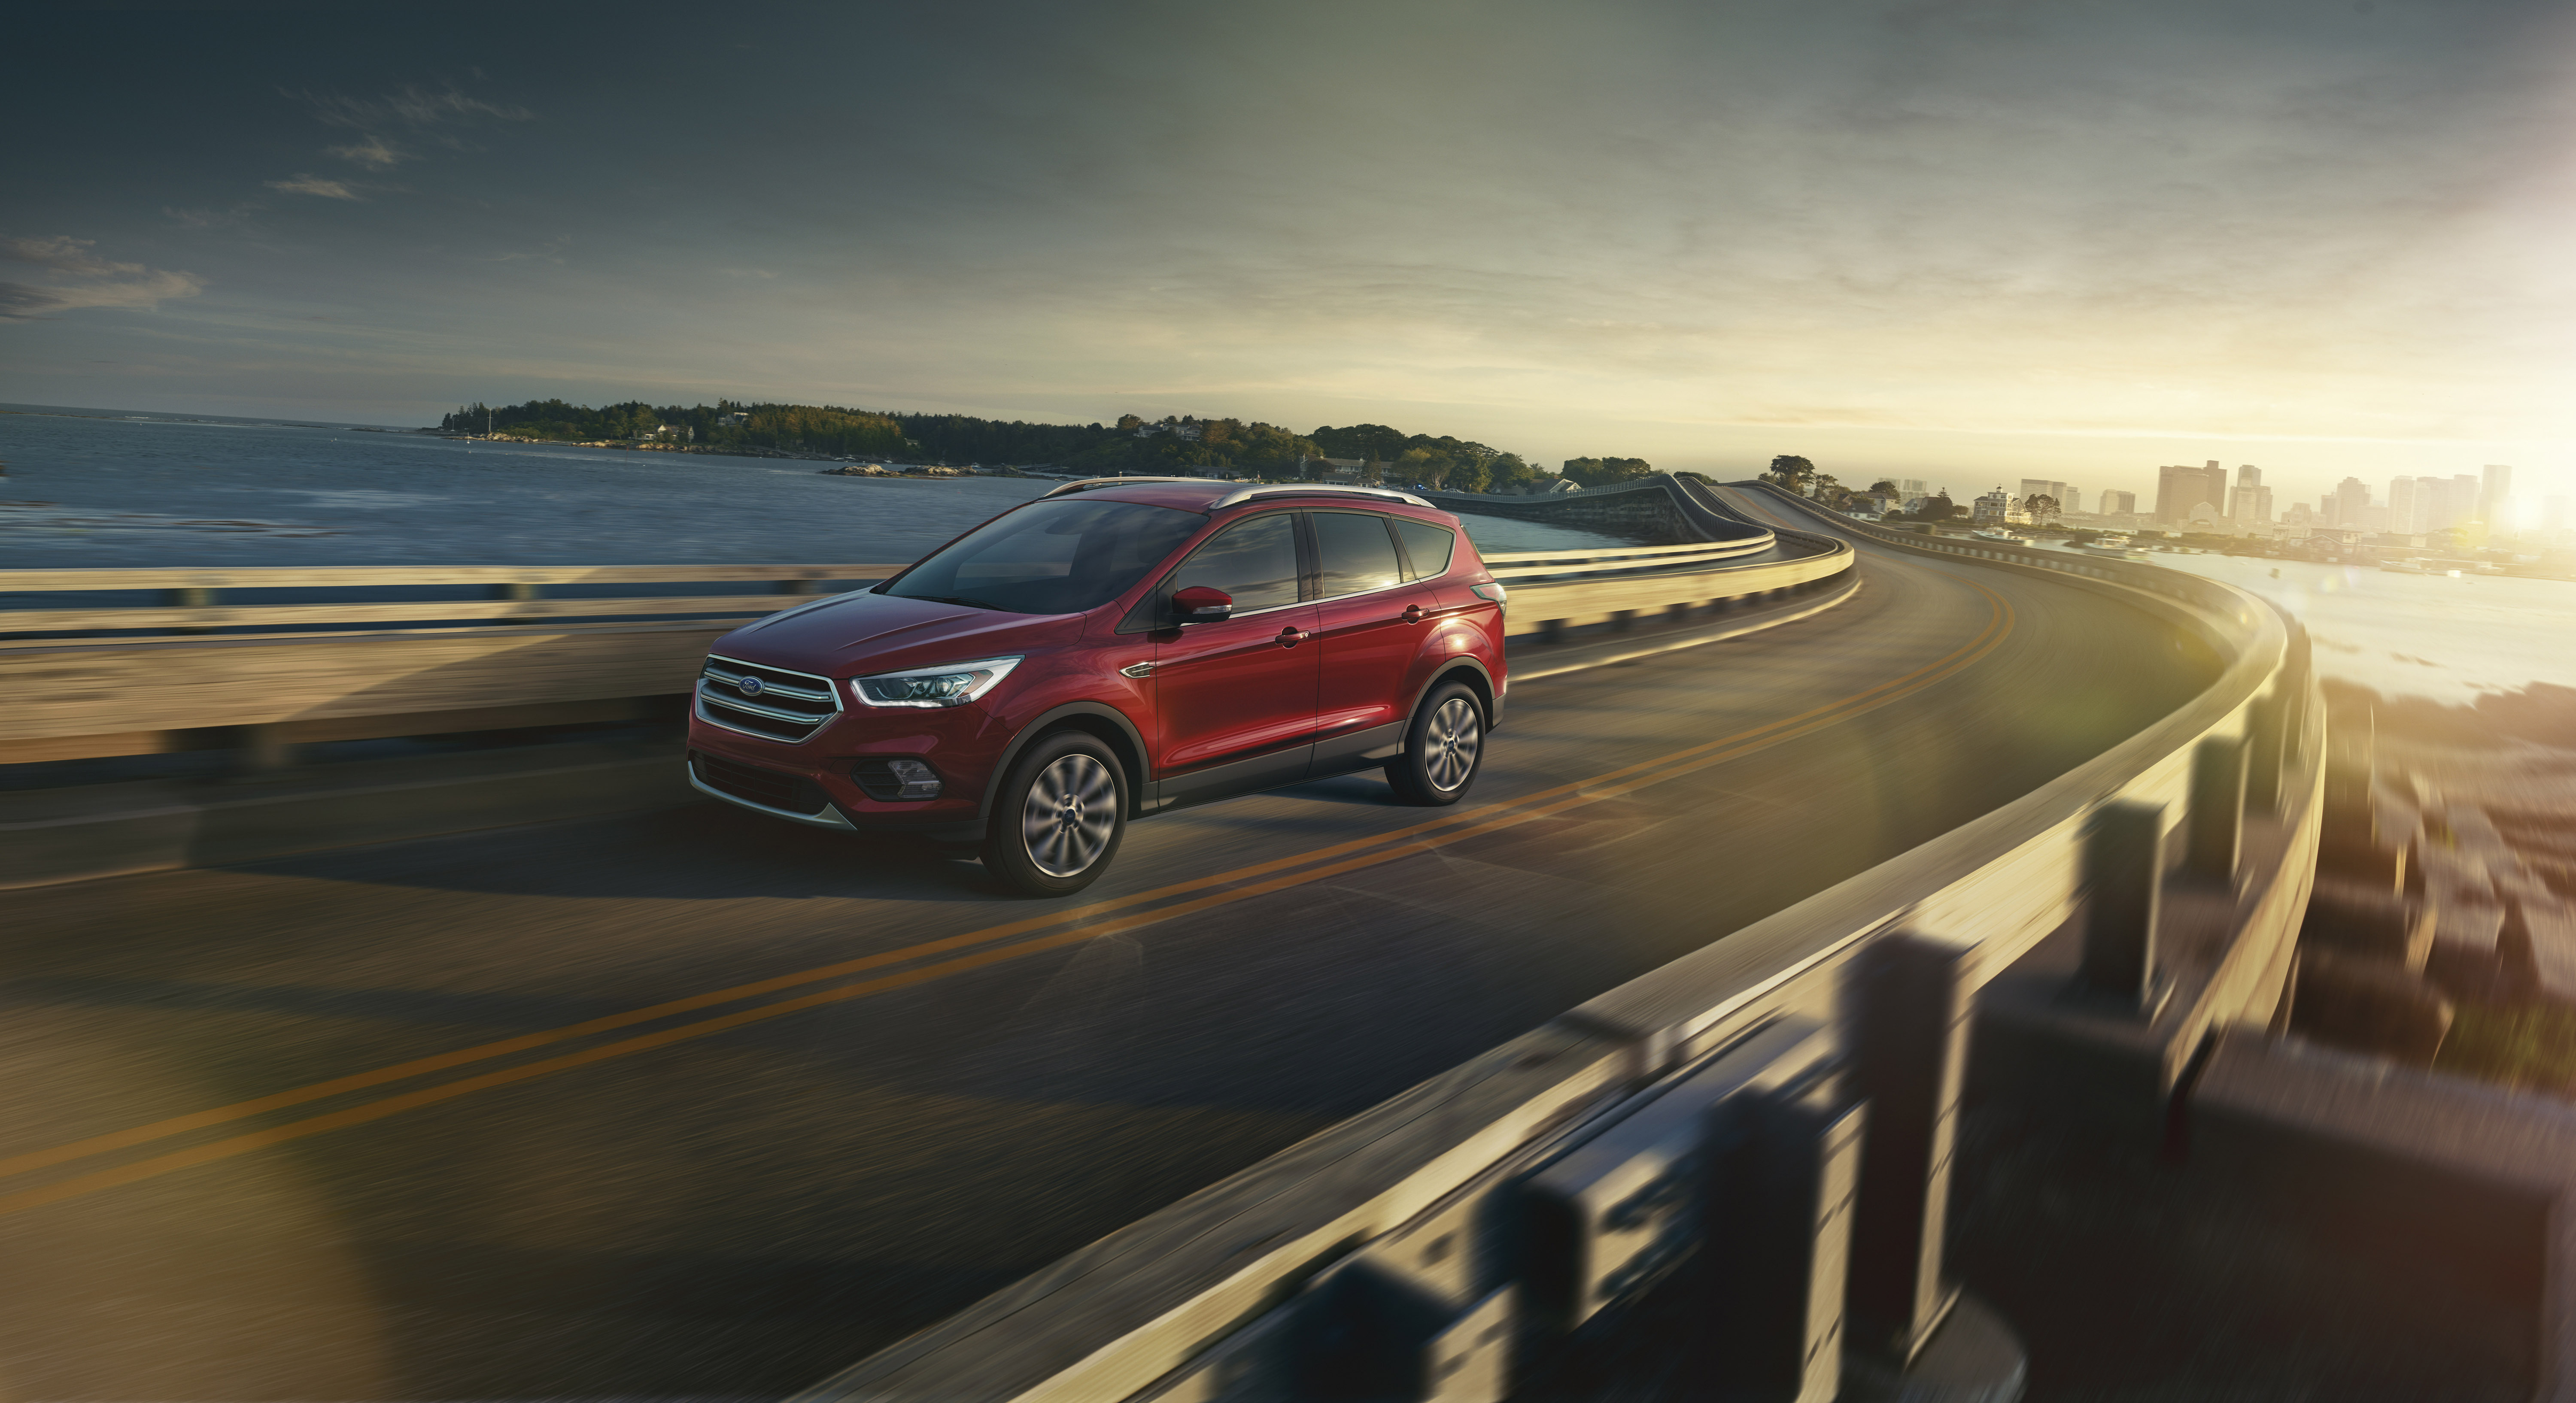 Best Start Ever For Ford Escape And Lincoln Mkc Sales Drives More Wiring Kfelker1fordcom